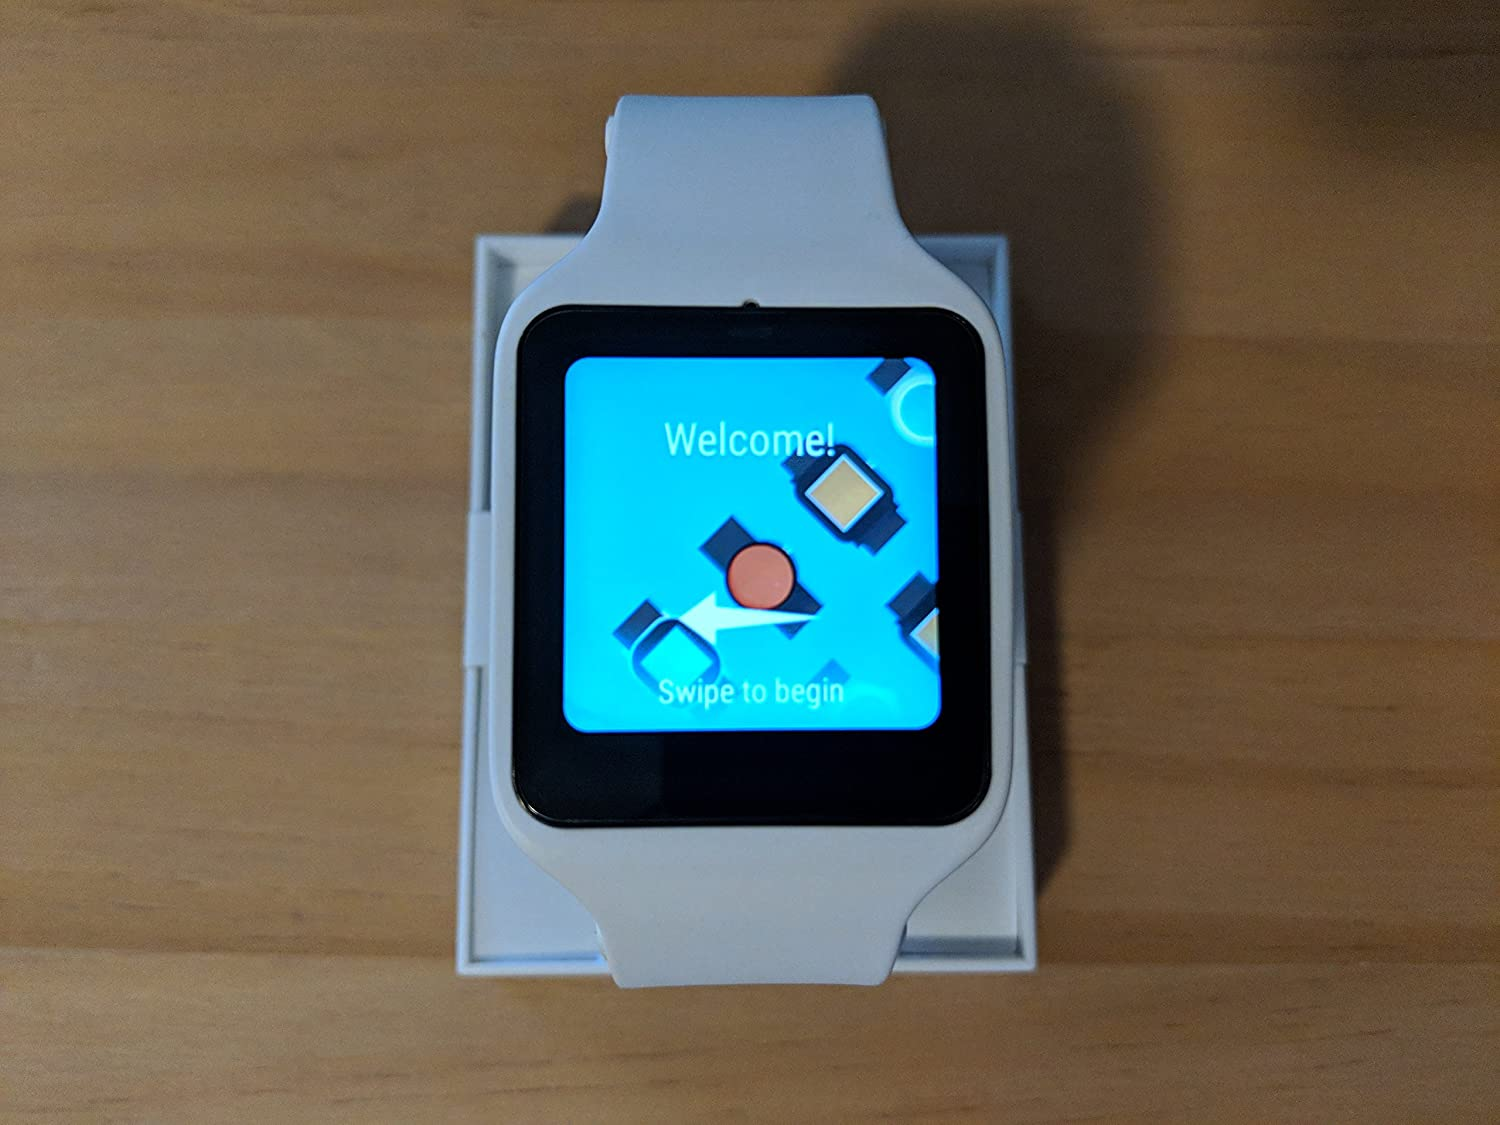 B00OI0X2Q2 Sony Smartwatch for Android 4.3 - White 91umT8weHvL